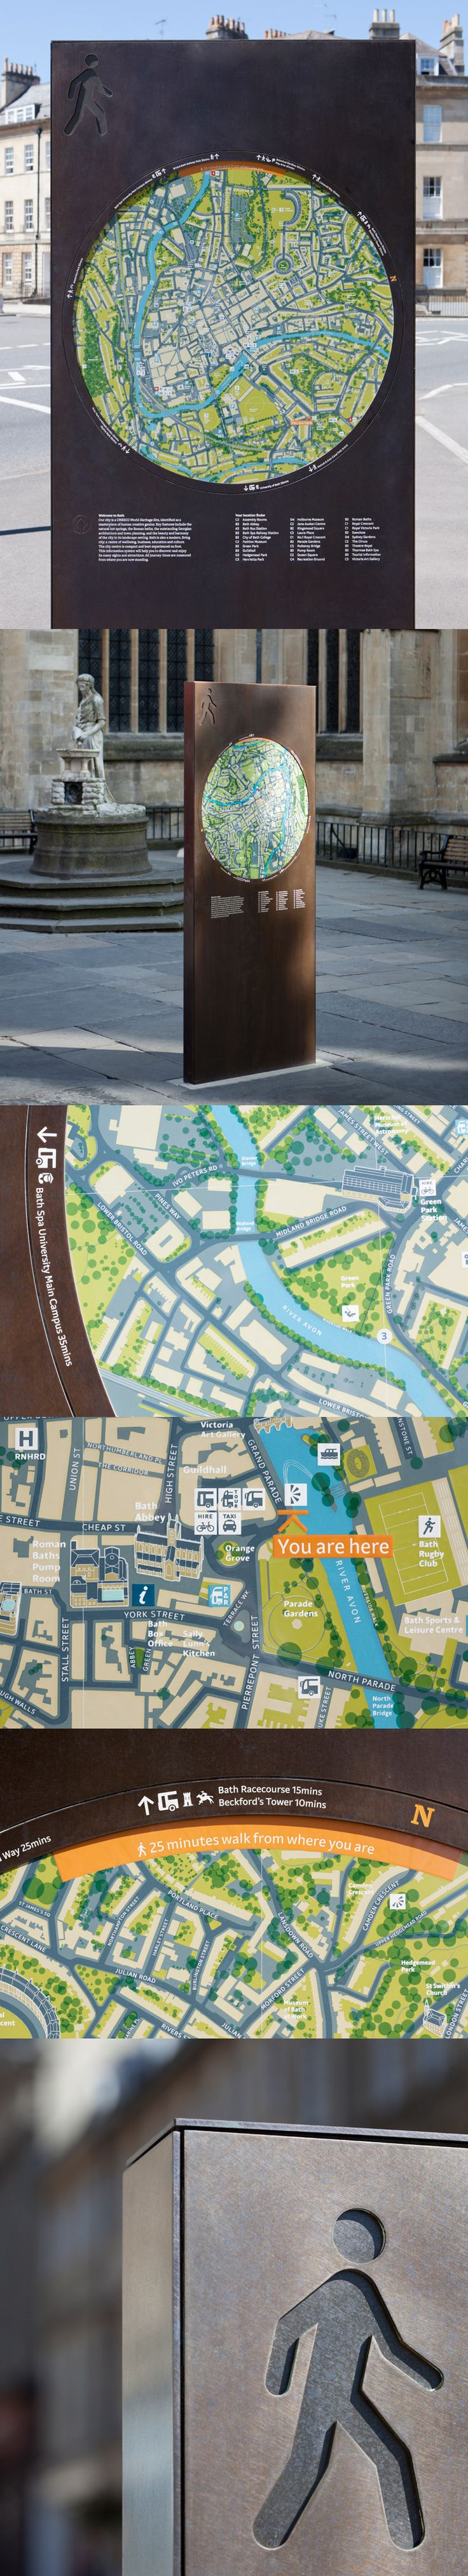 I love these Bath city wayfinding maps for the shape they take. It's unexpected, but is very fun for the viewer to look at and draws them in rather than being difficult and a nuisance to look at.